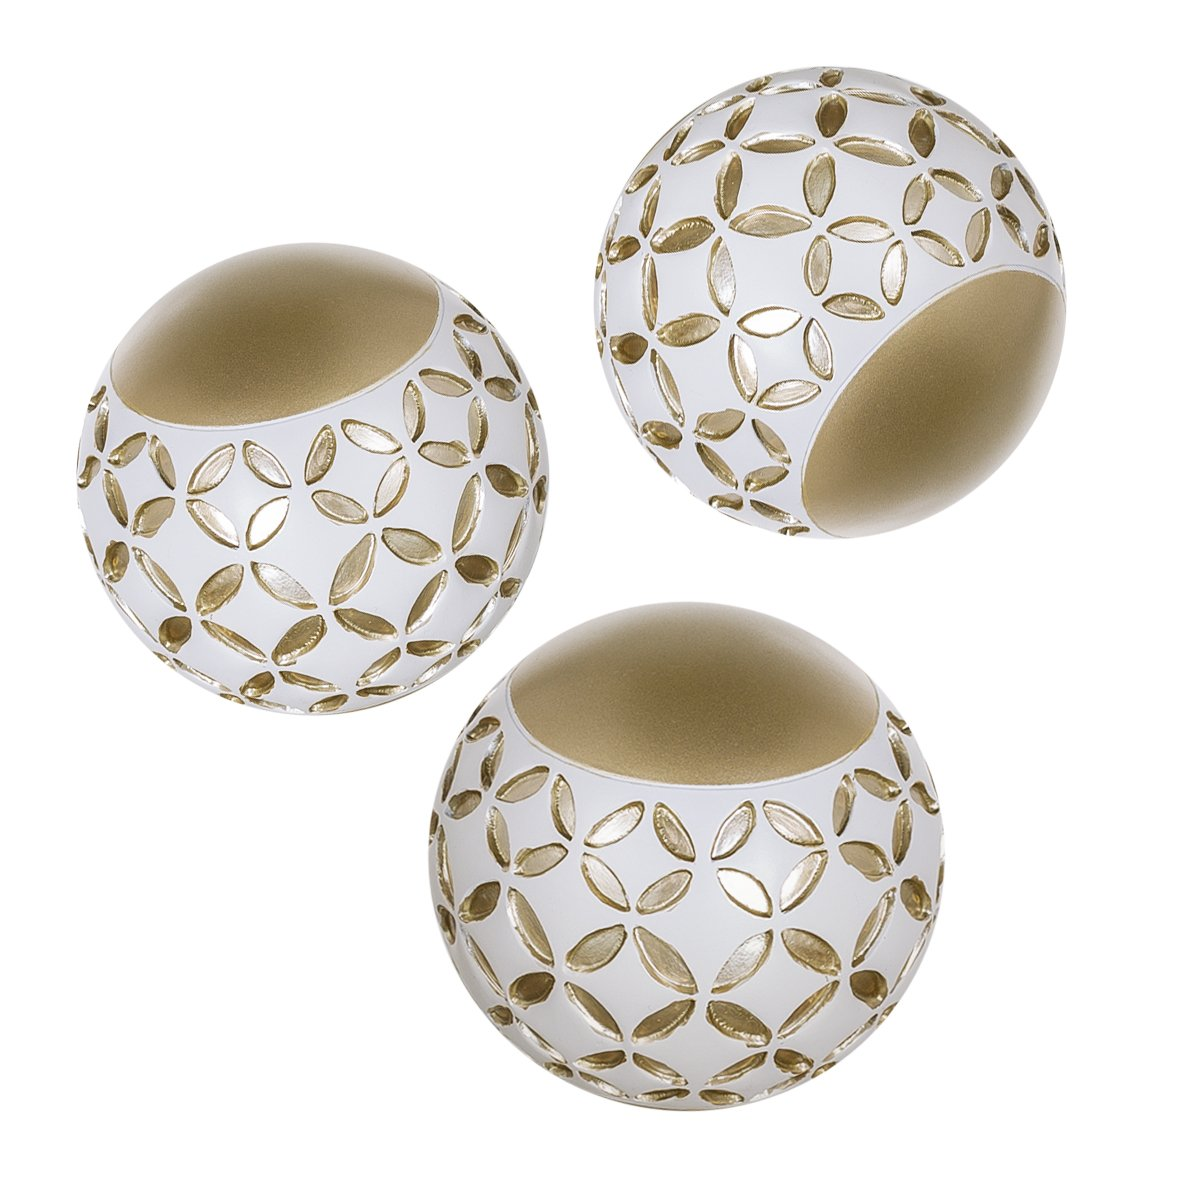 "Schonwerk Diamond Lattice Decorative Orbs Set of 3 | Resin Spheres Balls Decor | 3.2"" Colorful Elegant Orbs for Bowls 